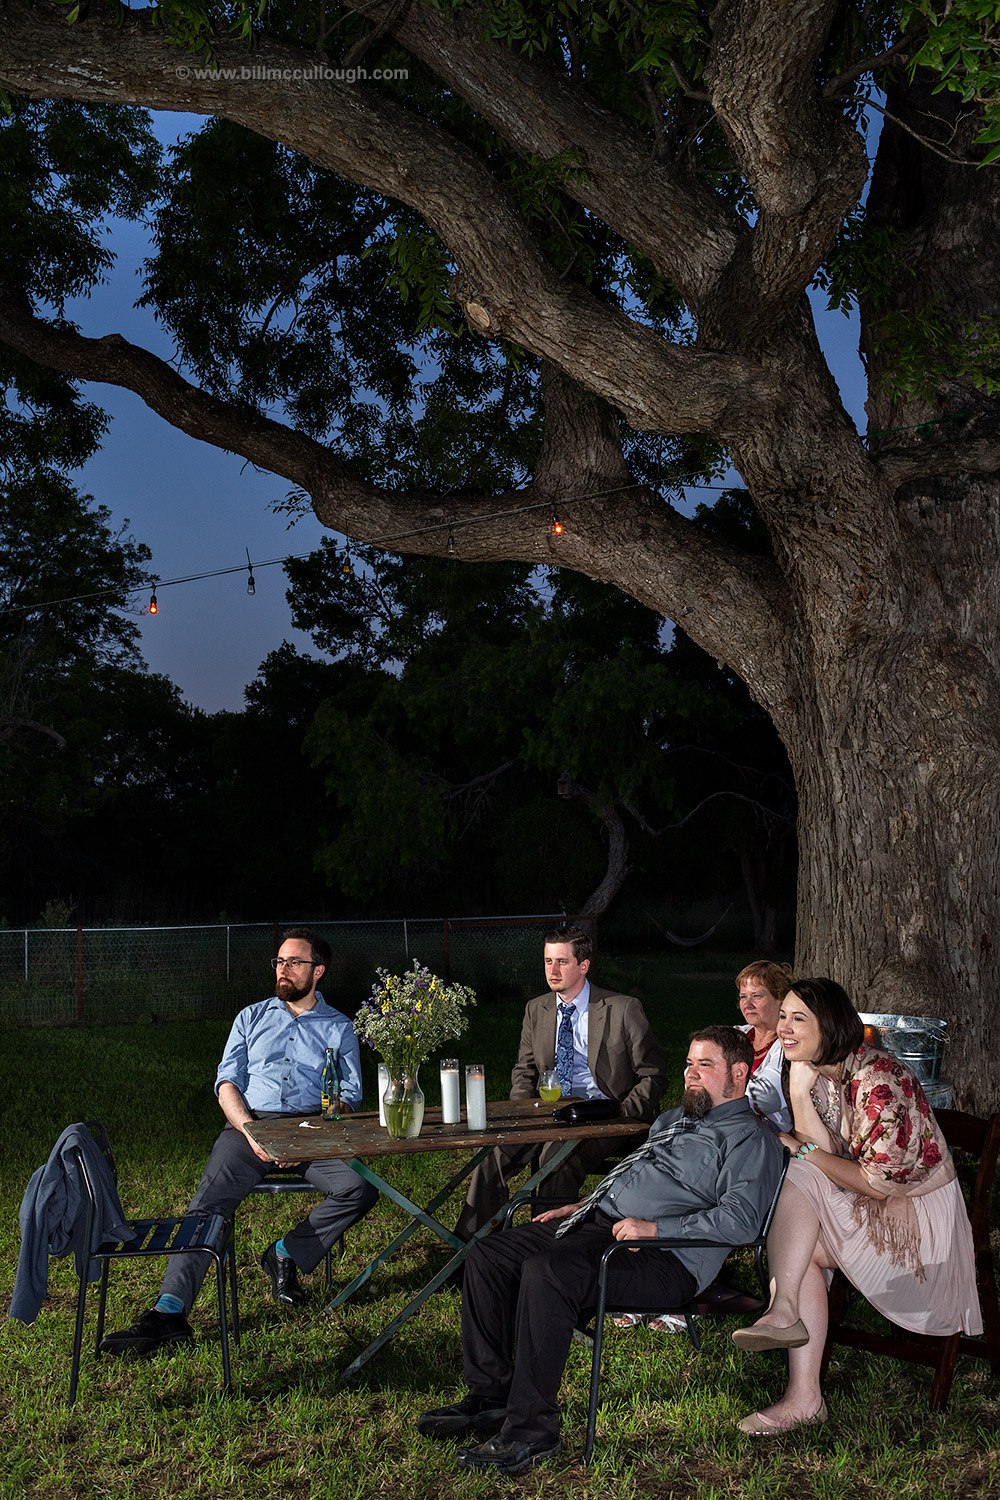 austin-backyard-wedding-150502-1915-39.jpg